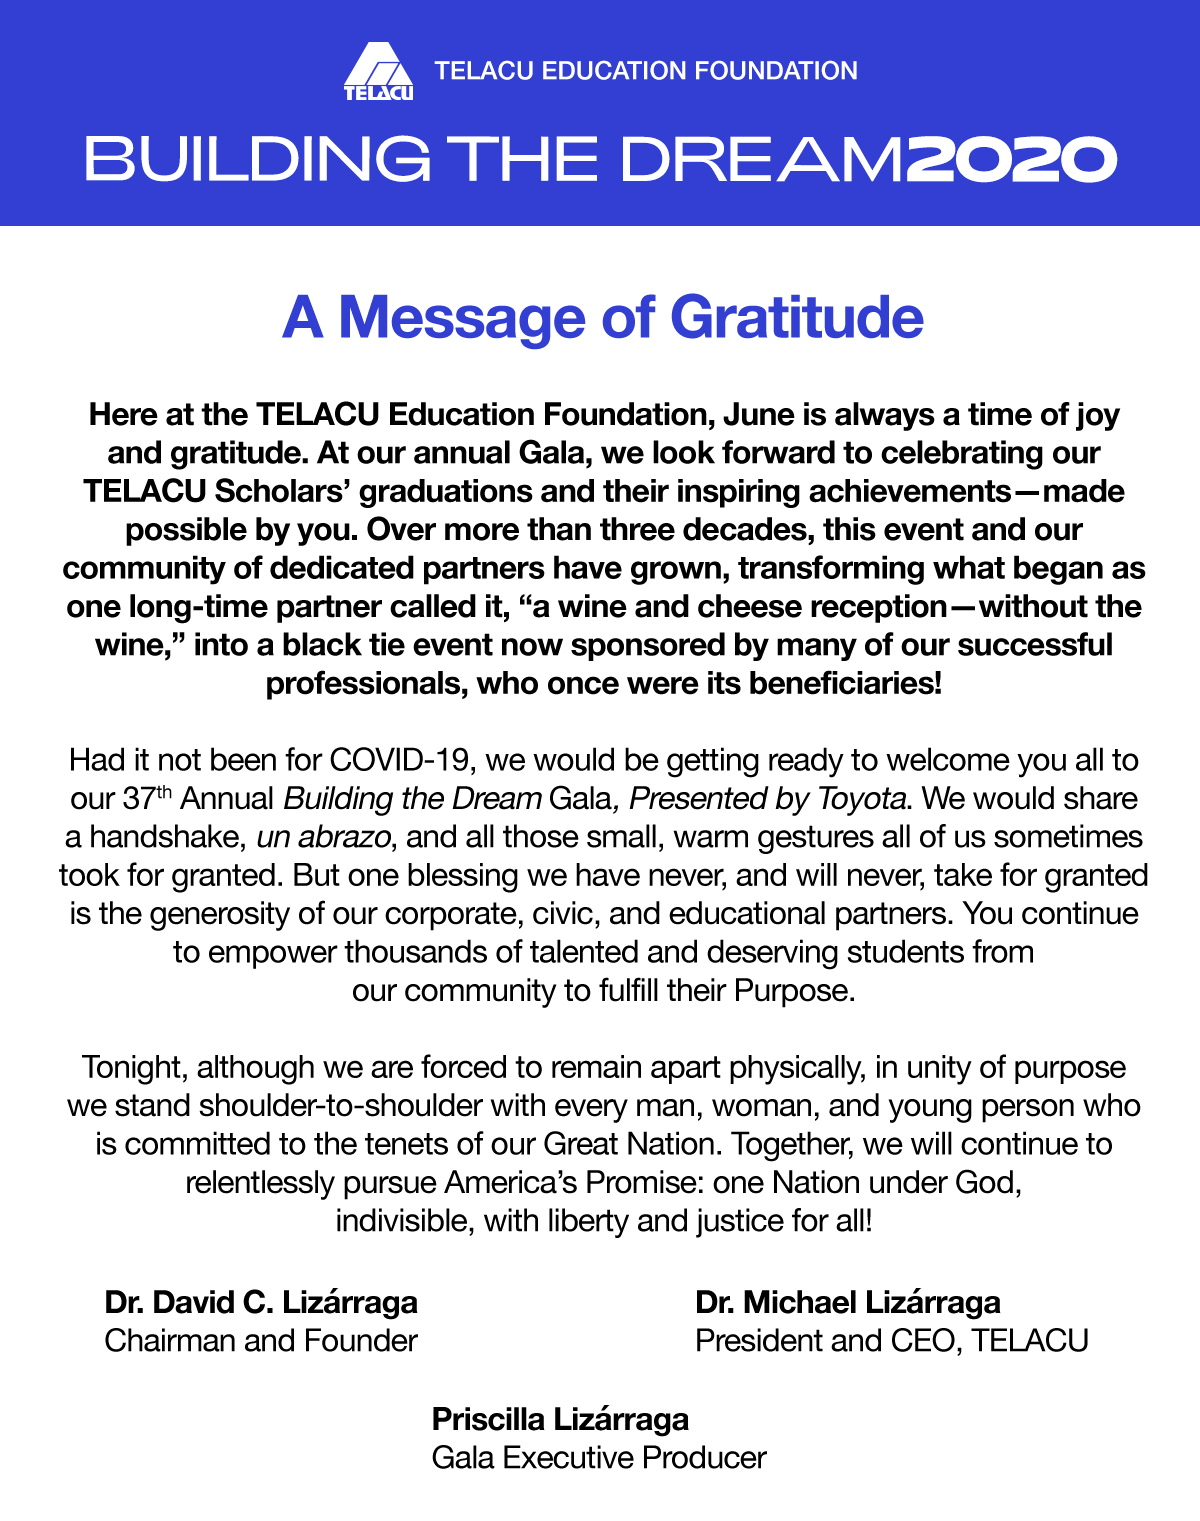 A message of Gratitude to our sponsors and partners